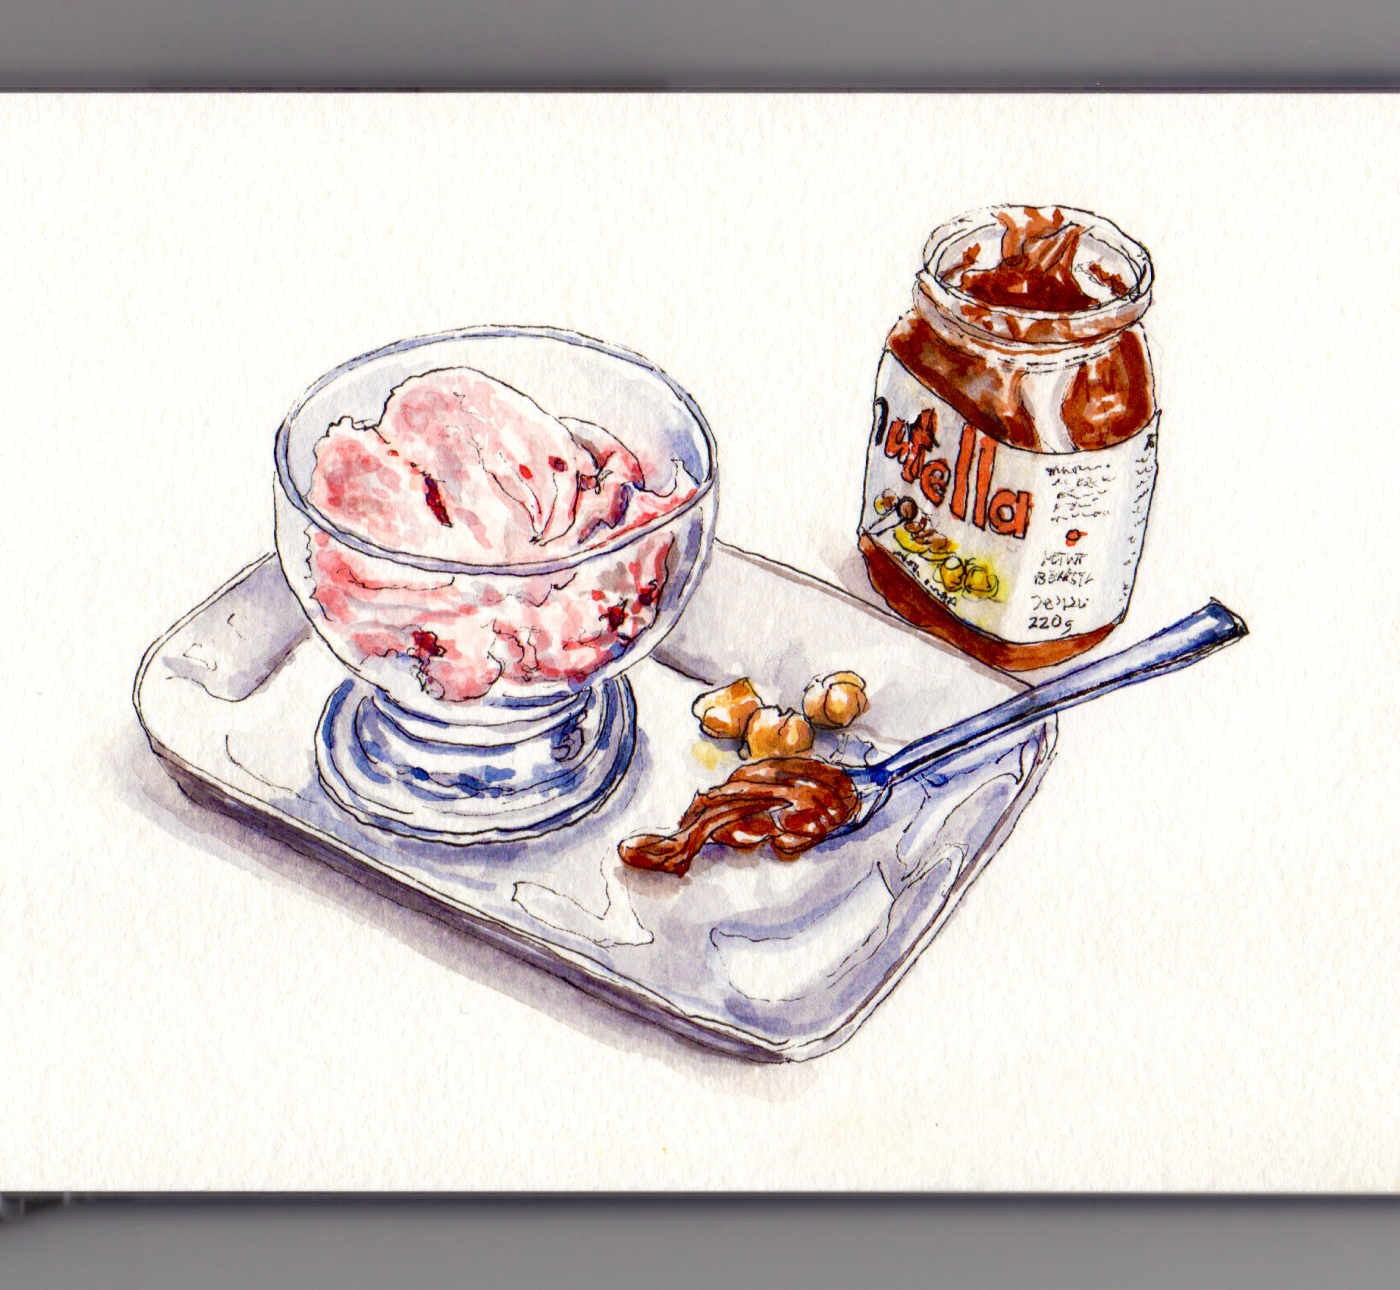 Day 14: #WorldWatercolorMonth Strawberry Ice Cream and Nutella